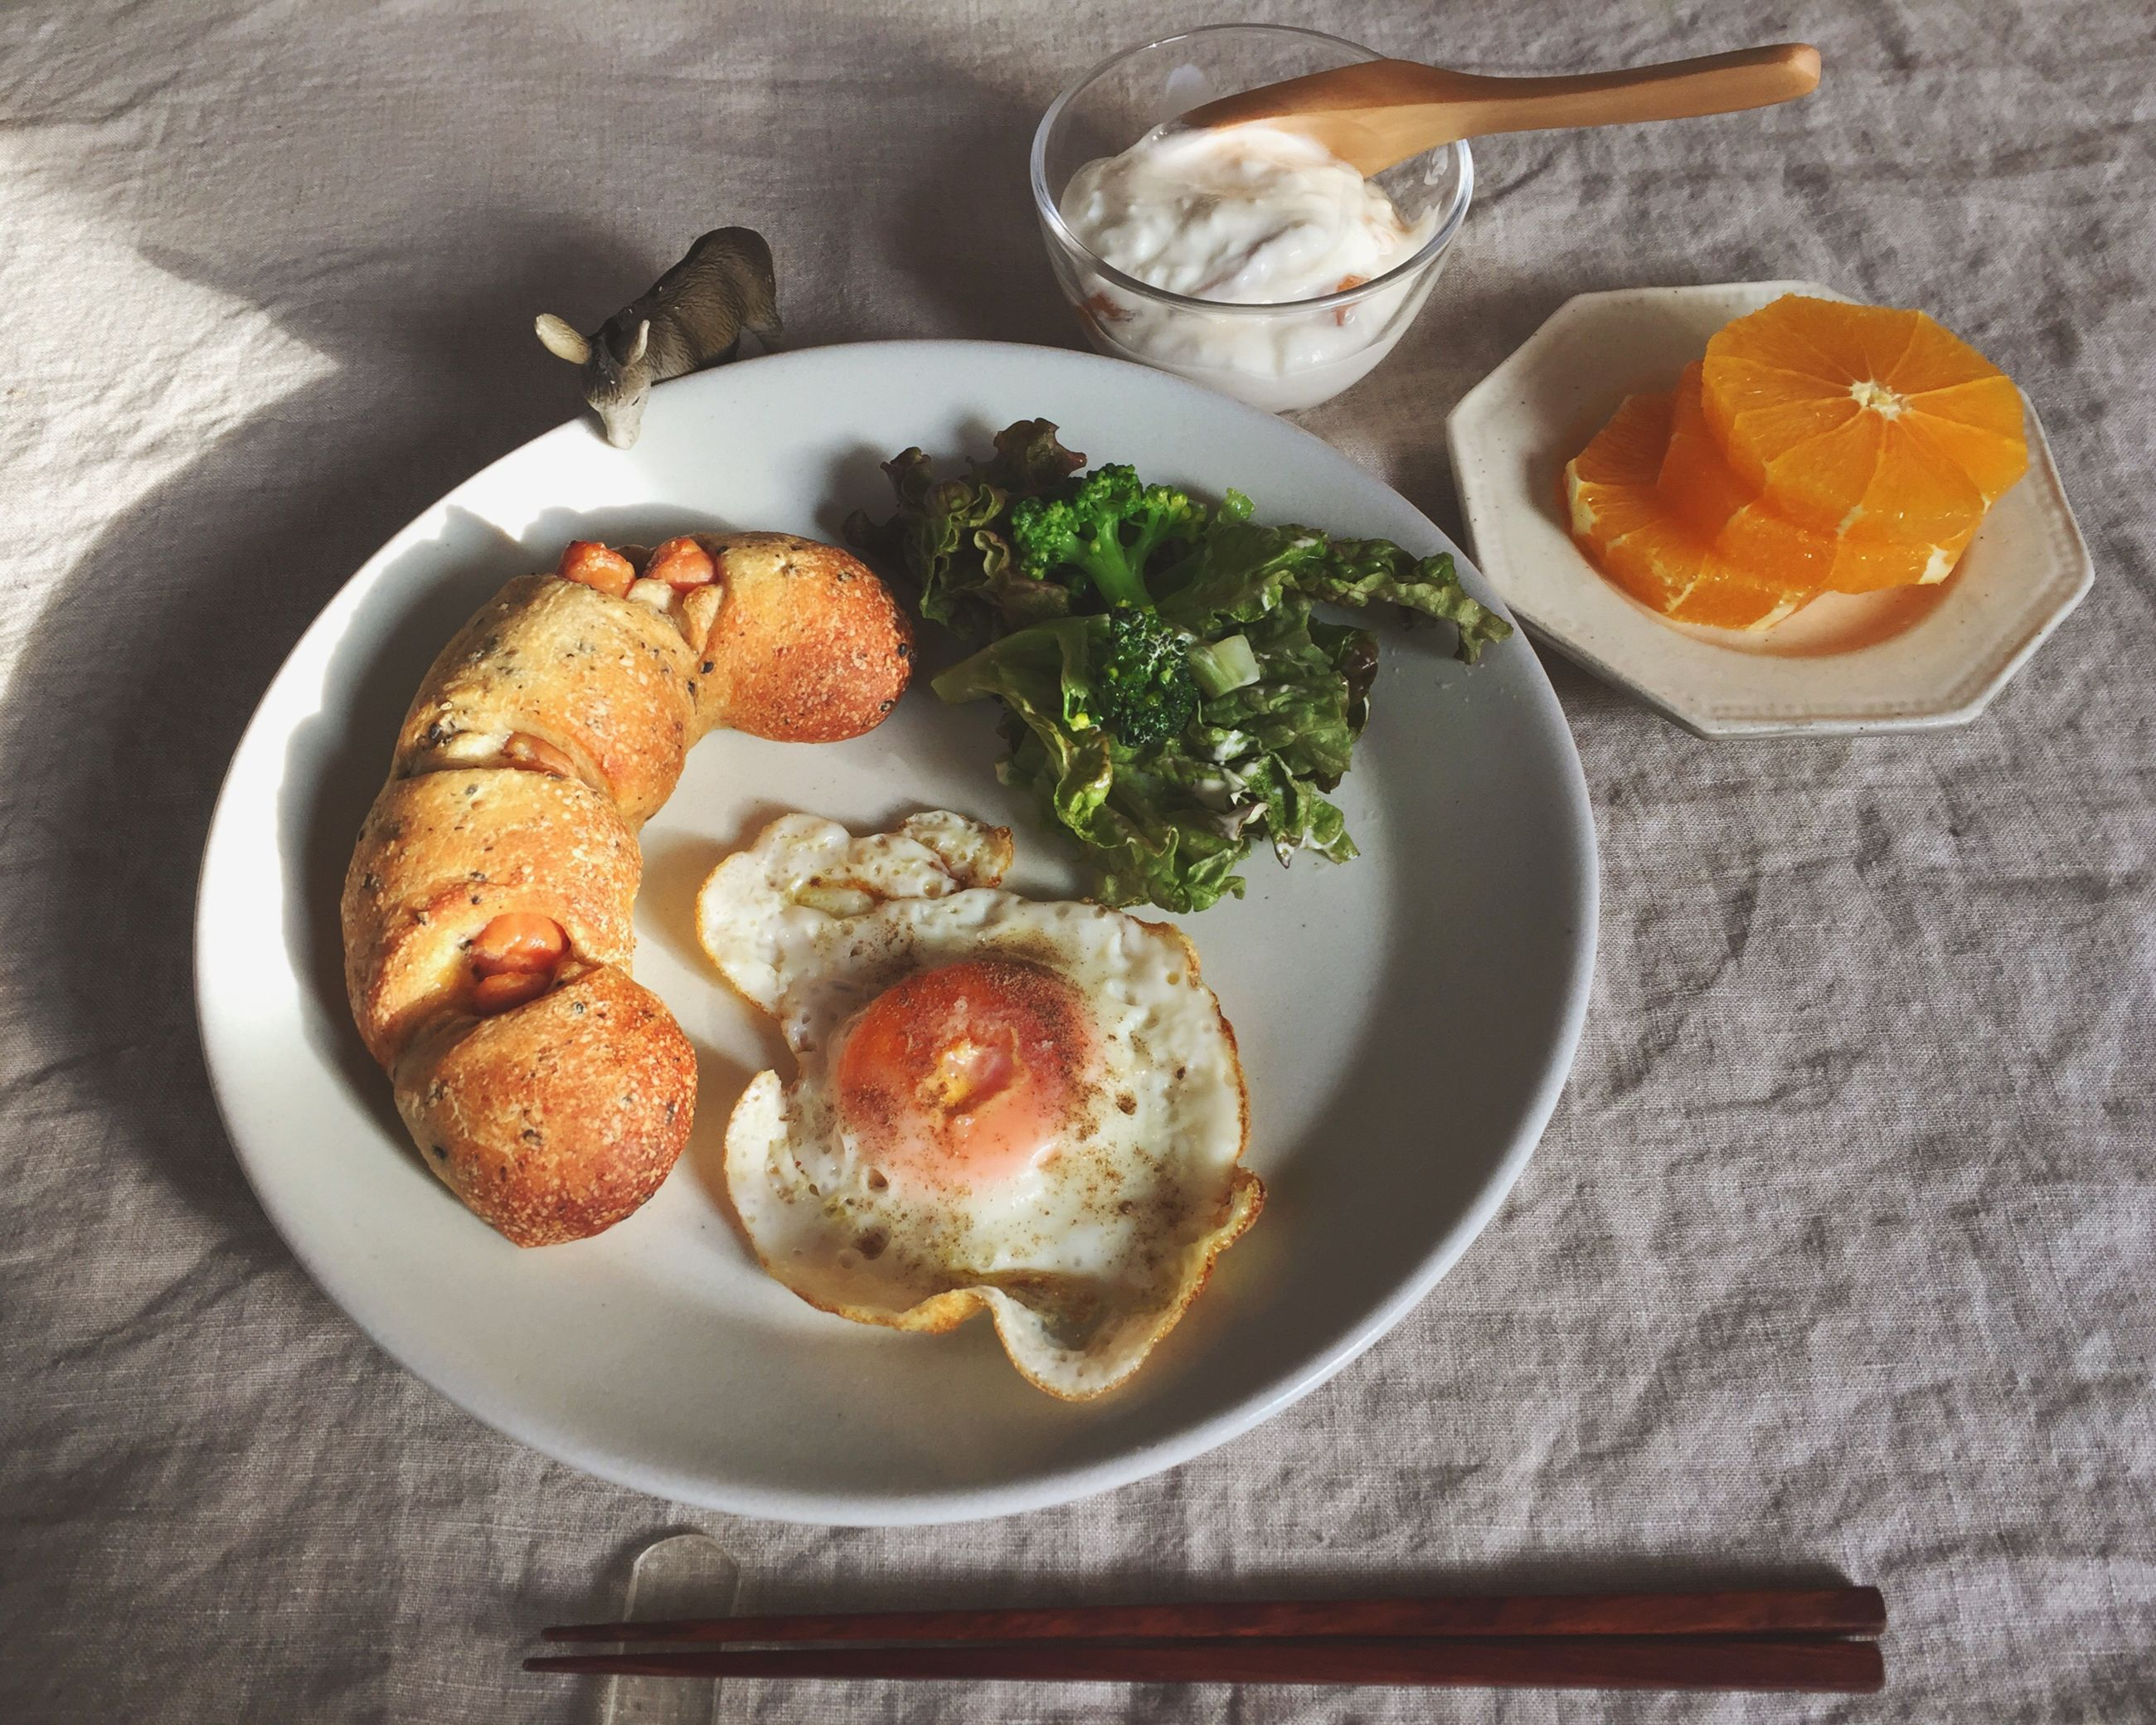 food, healthy eating, food and drink, freshness, ready-to-eat, fried egg, no people, day